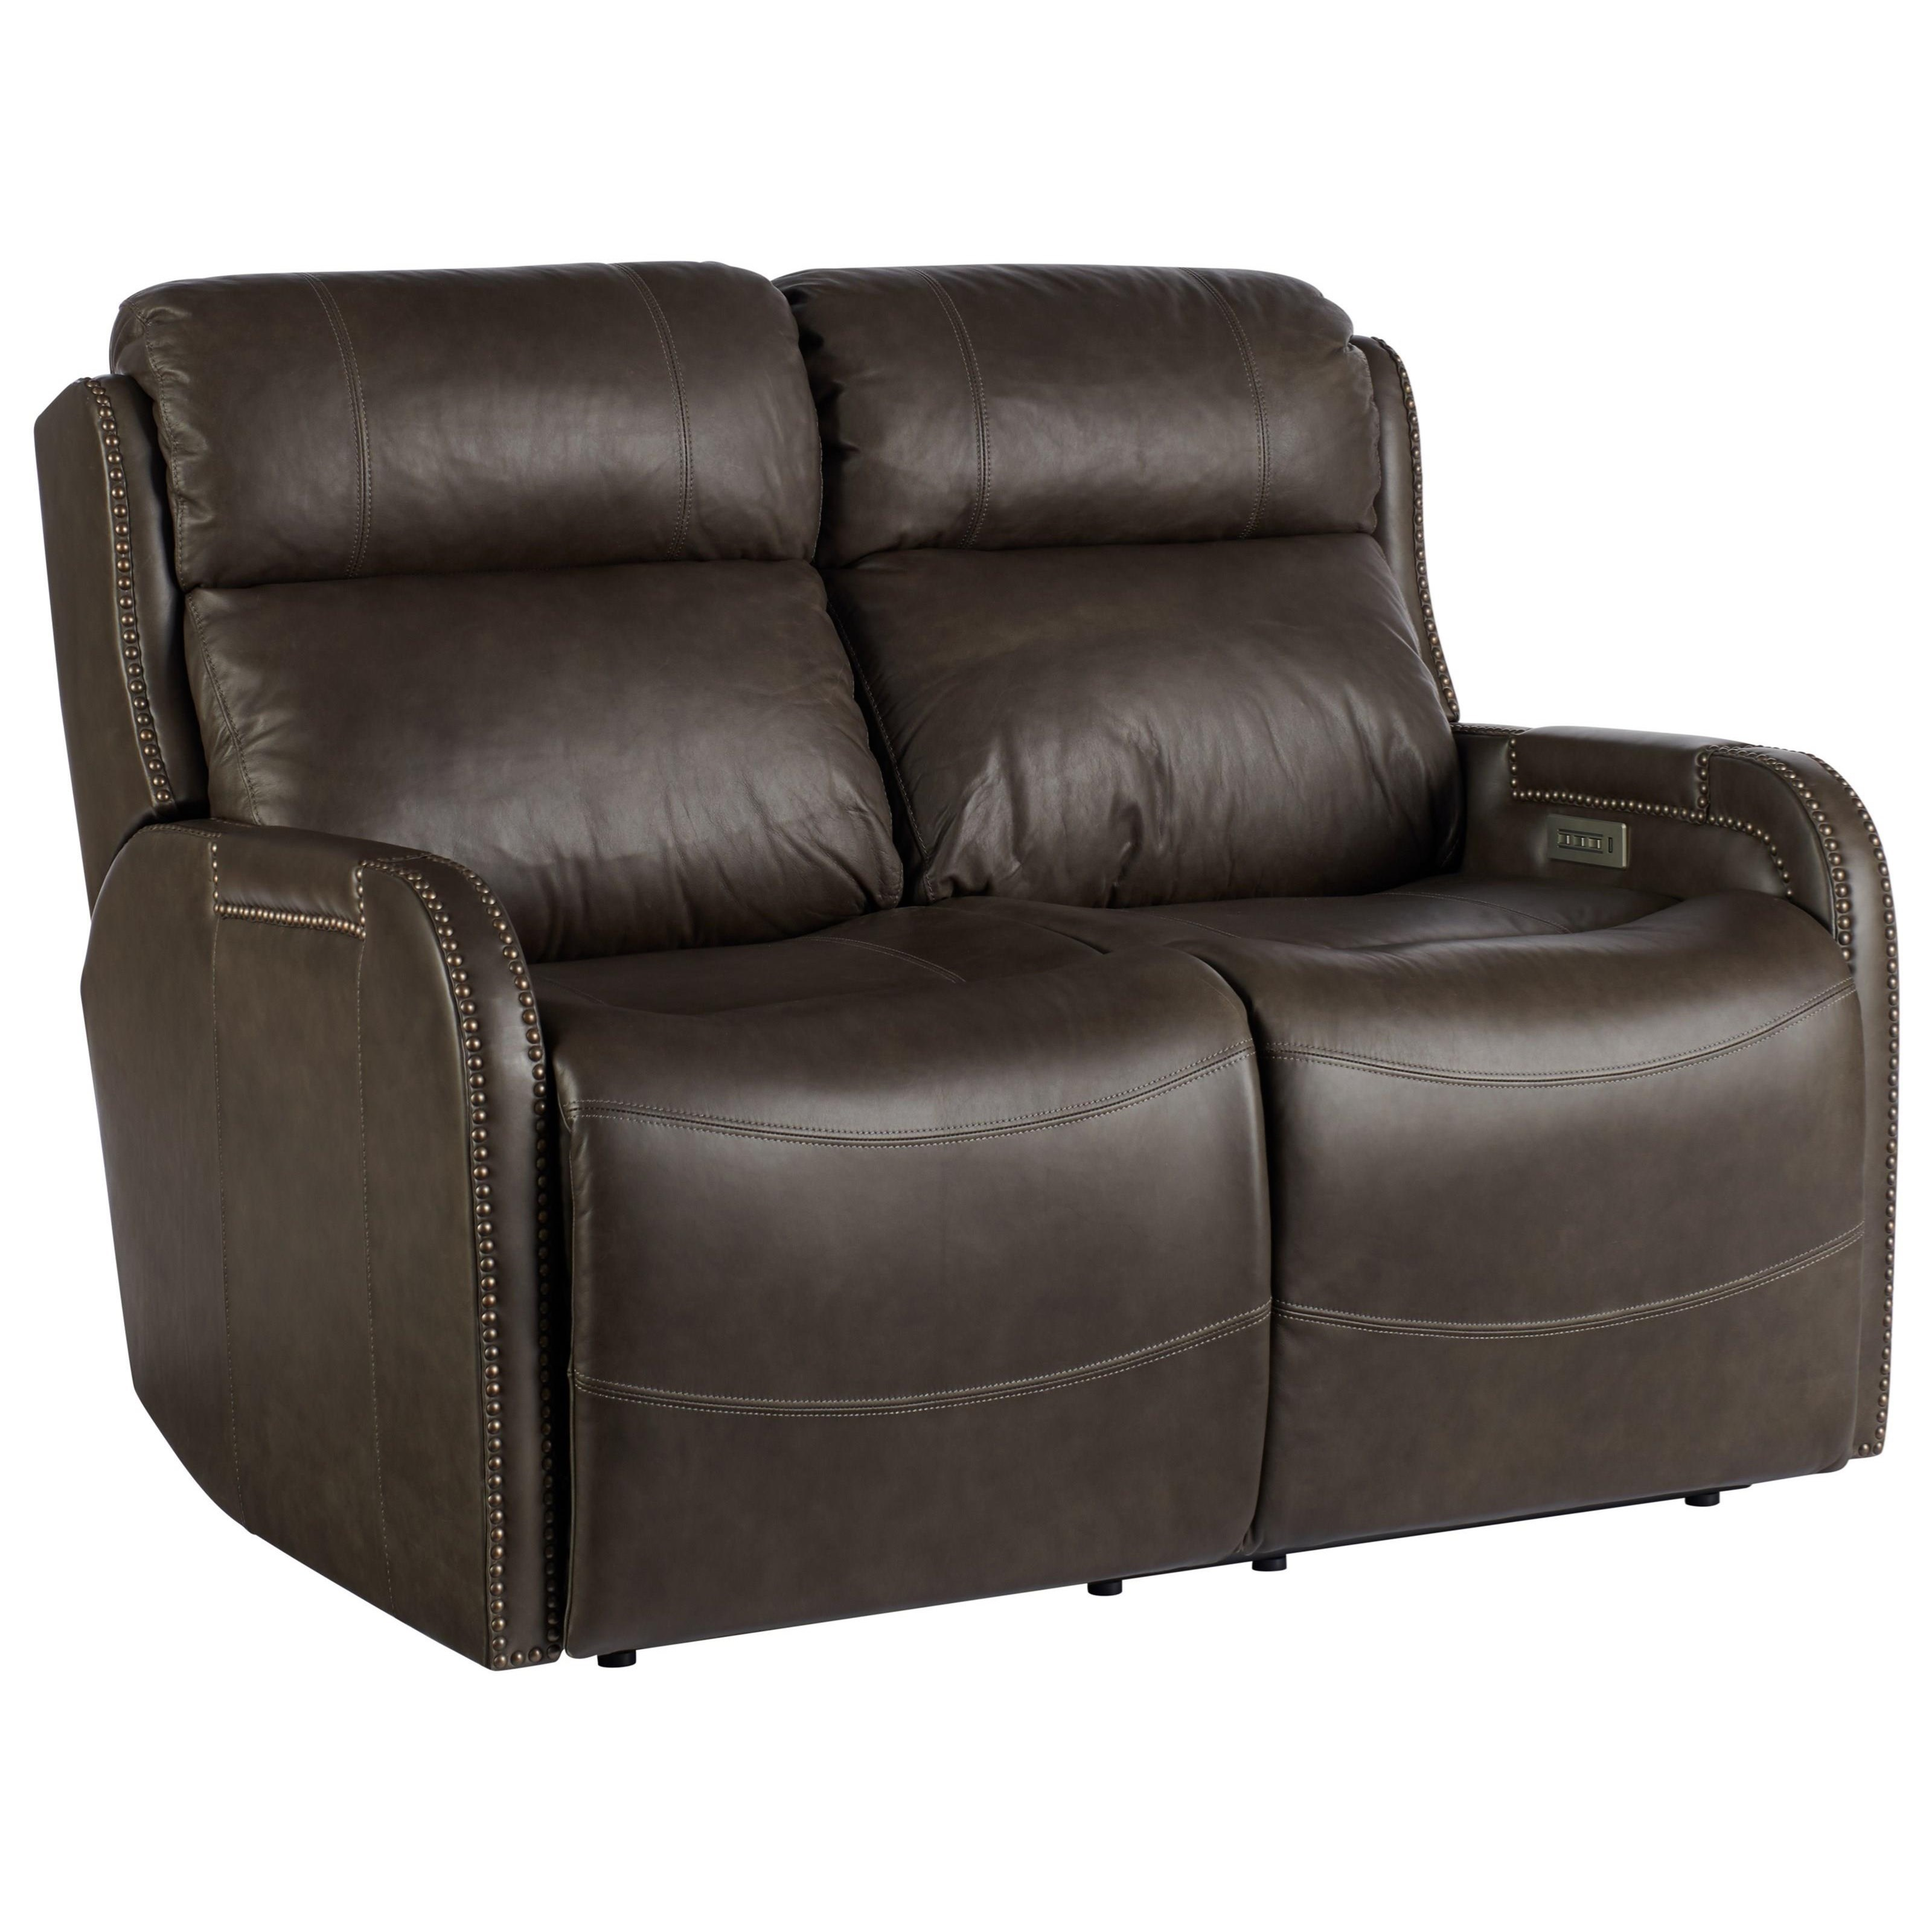 Motion Mayfield Motion Loveseat by Universal at Baer's Furniture